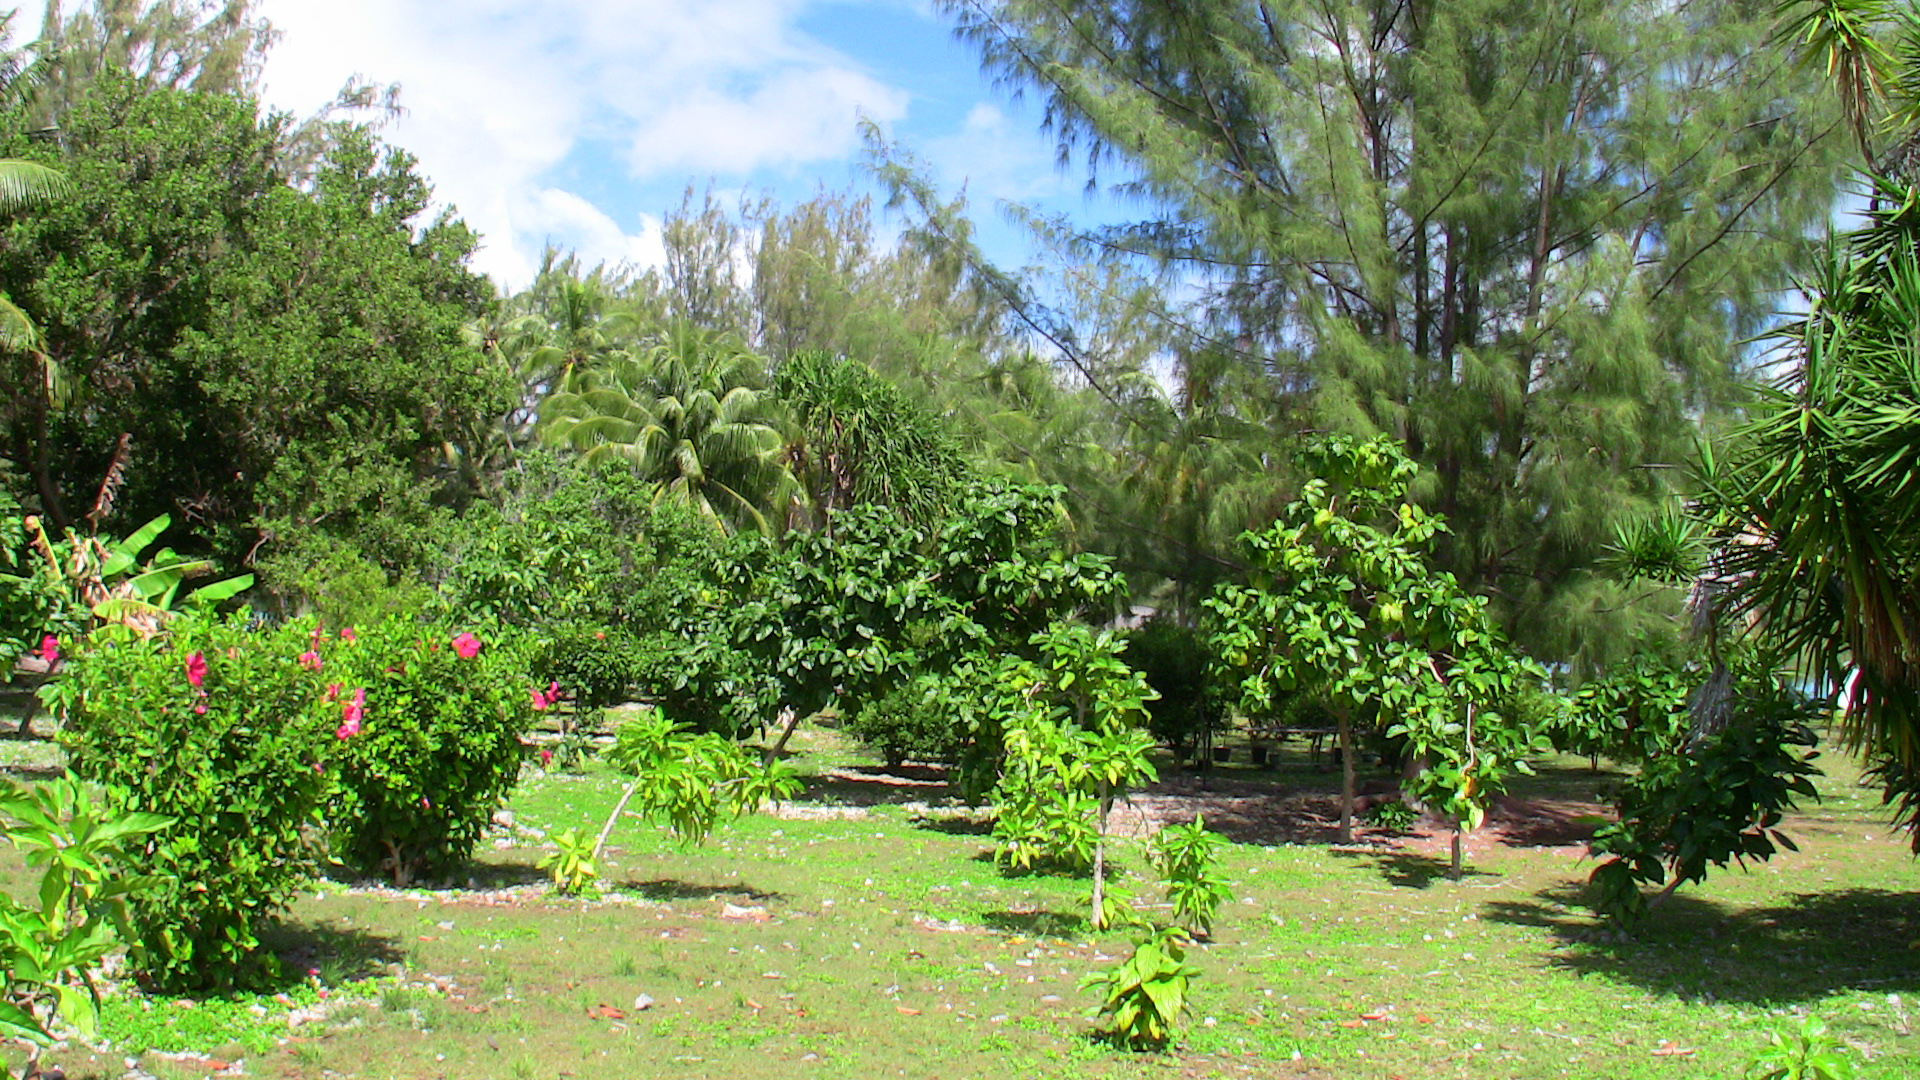 plants and trees on island center in Tahiti